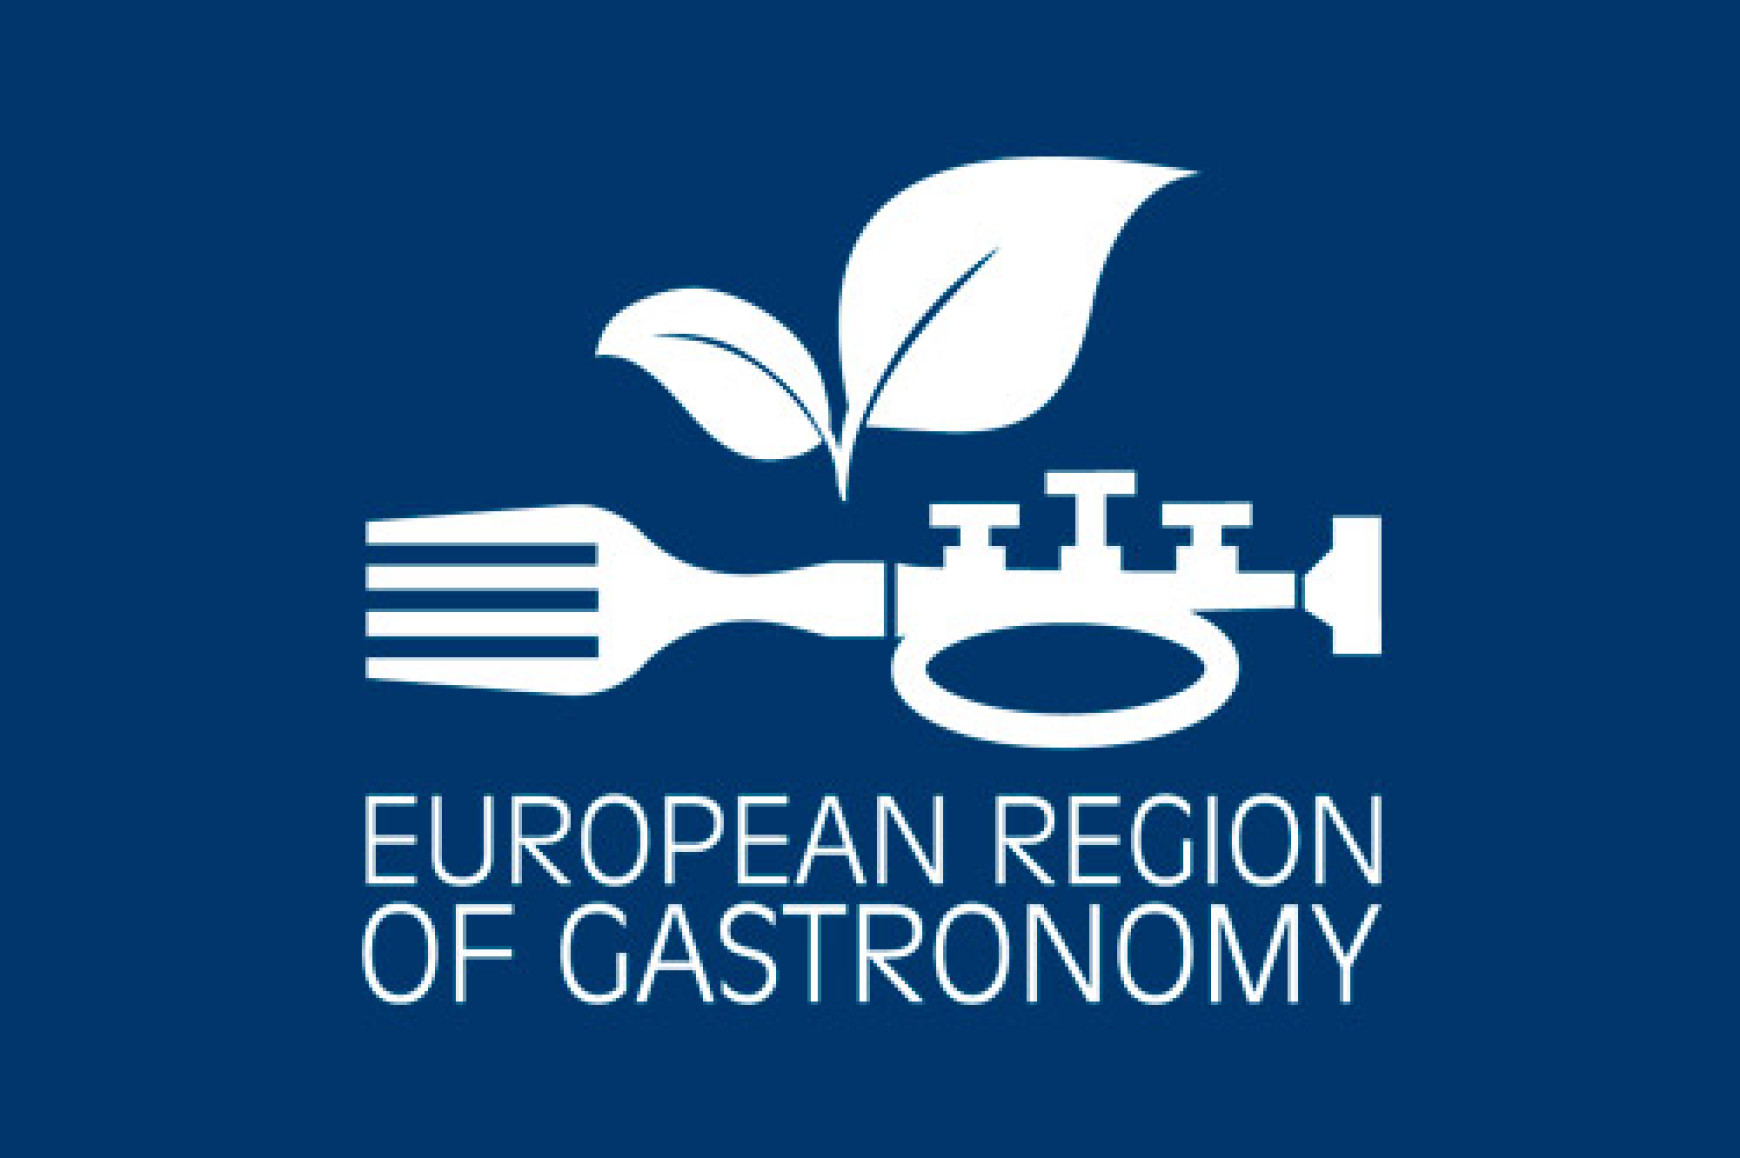 European Region of Gastronomy Award endorsed by EU institutions as a positive model for regional development